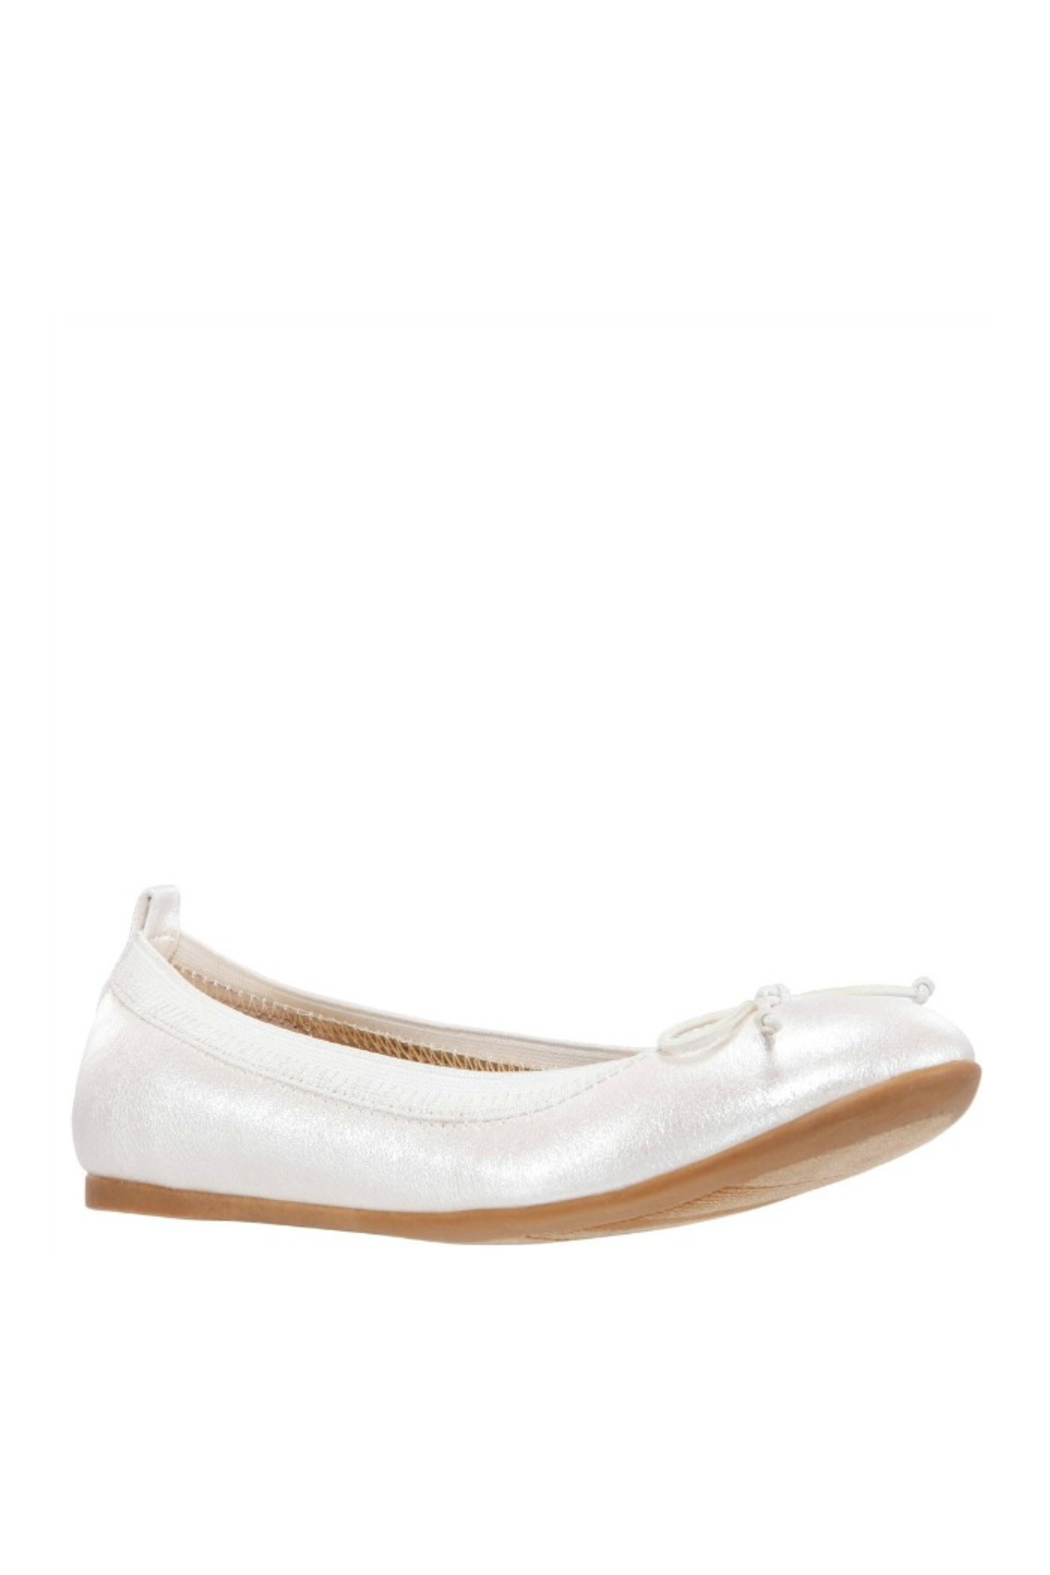 Nina Kids Esther Flat in Ivory Pearlized - Main Image